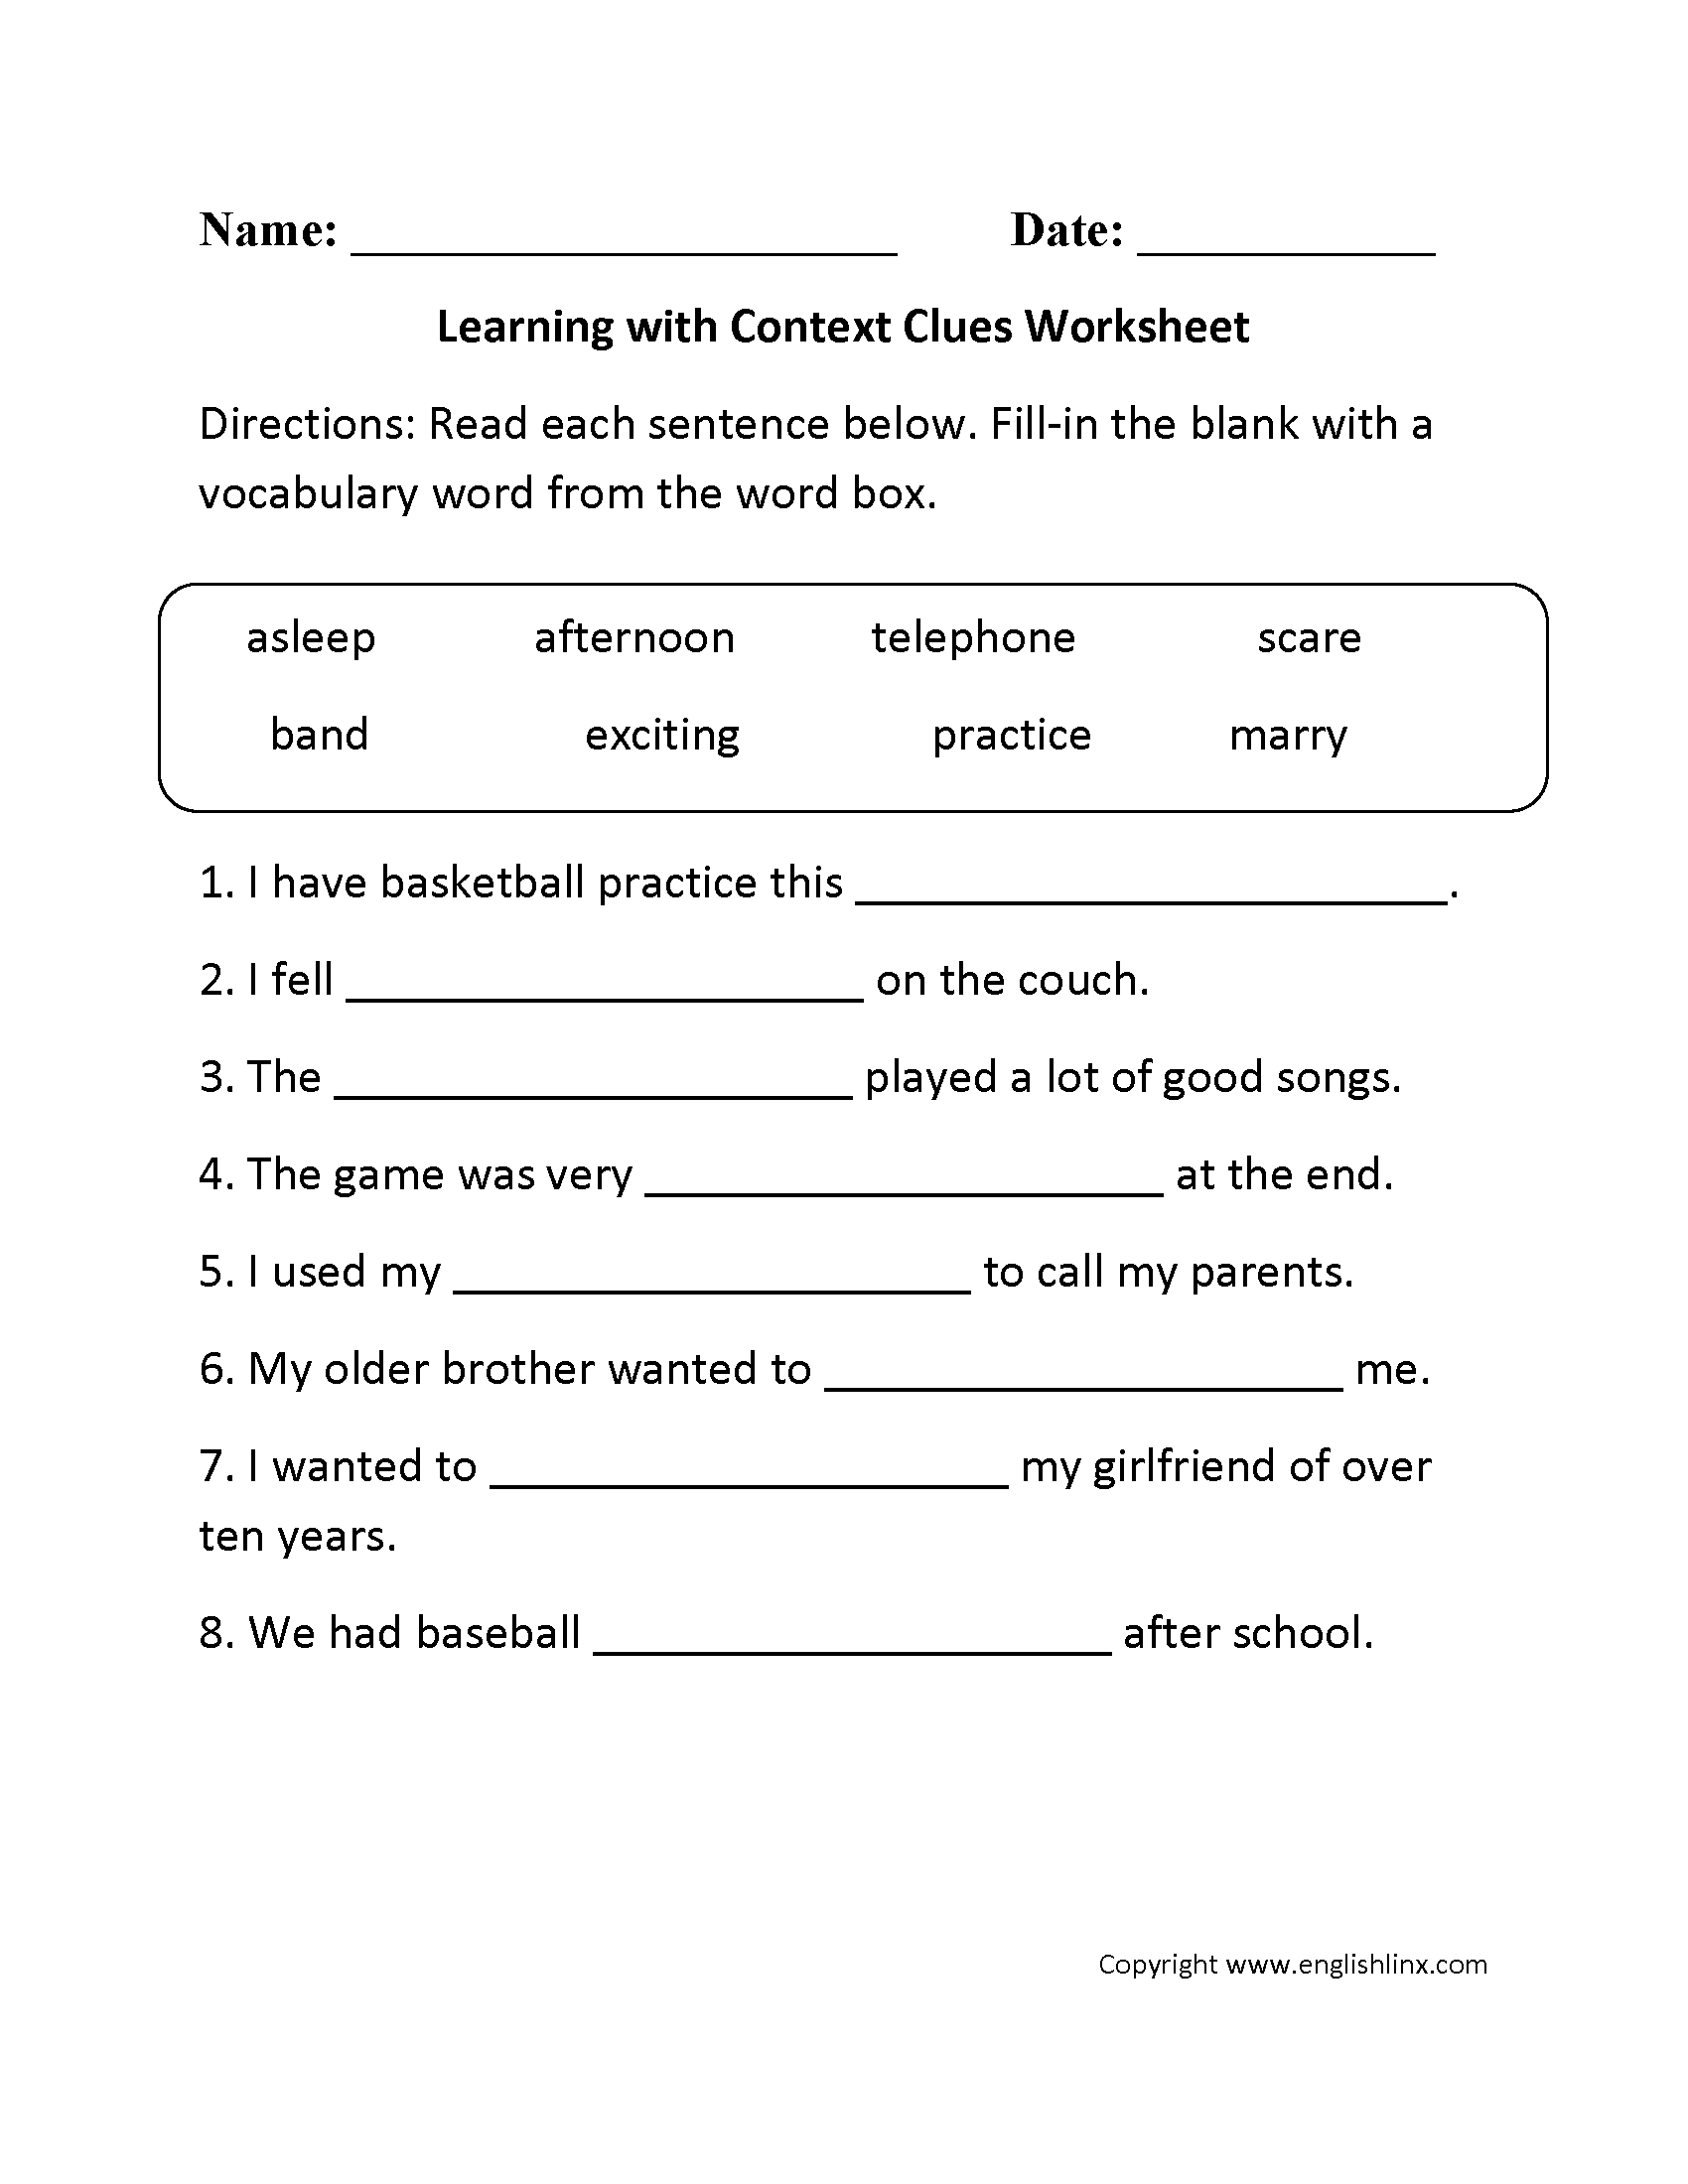 Worksheets Using Context Clues Worksheets reading worksheets context clues worksheet